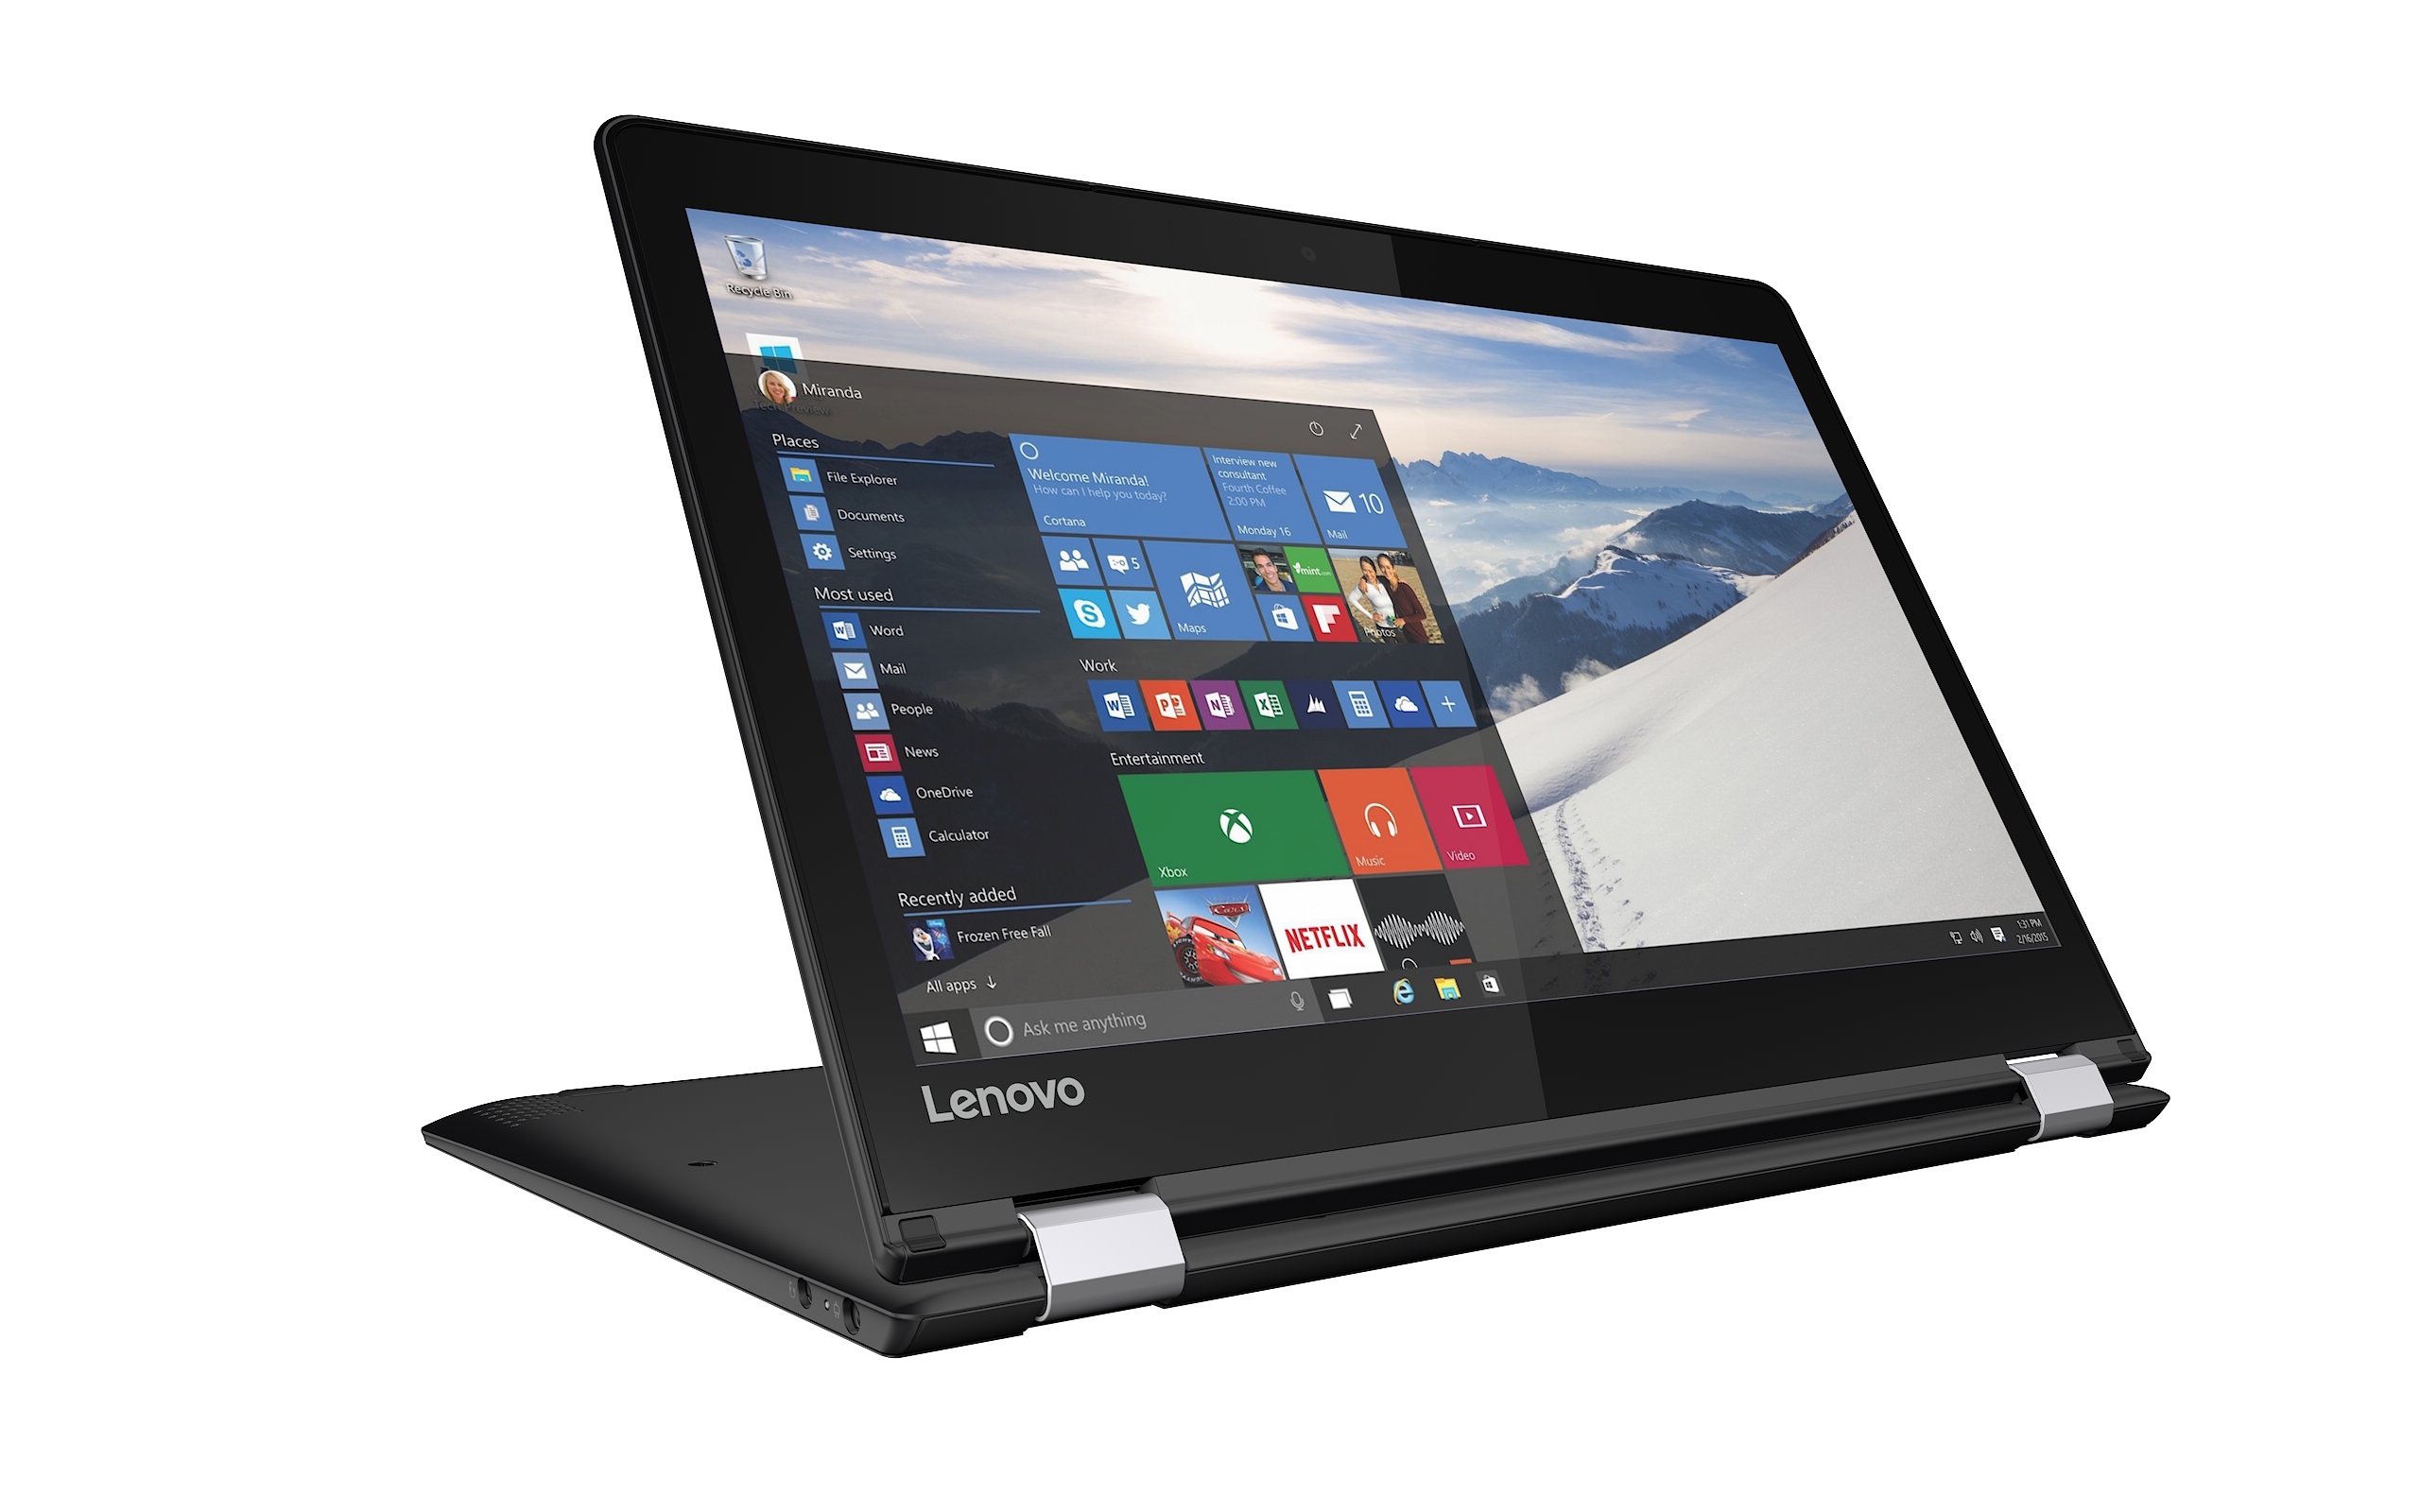 Lenovo Launches New MIIX 310 Tablet, Yoga 510 And Yoga 710